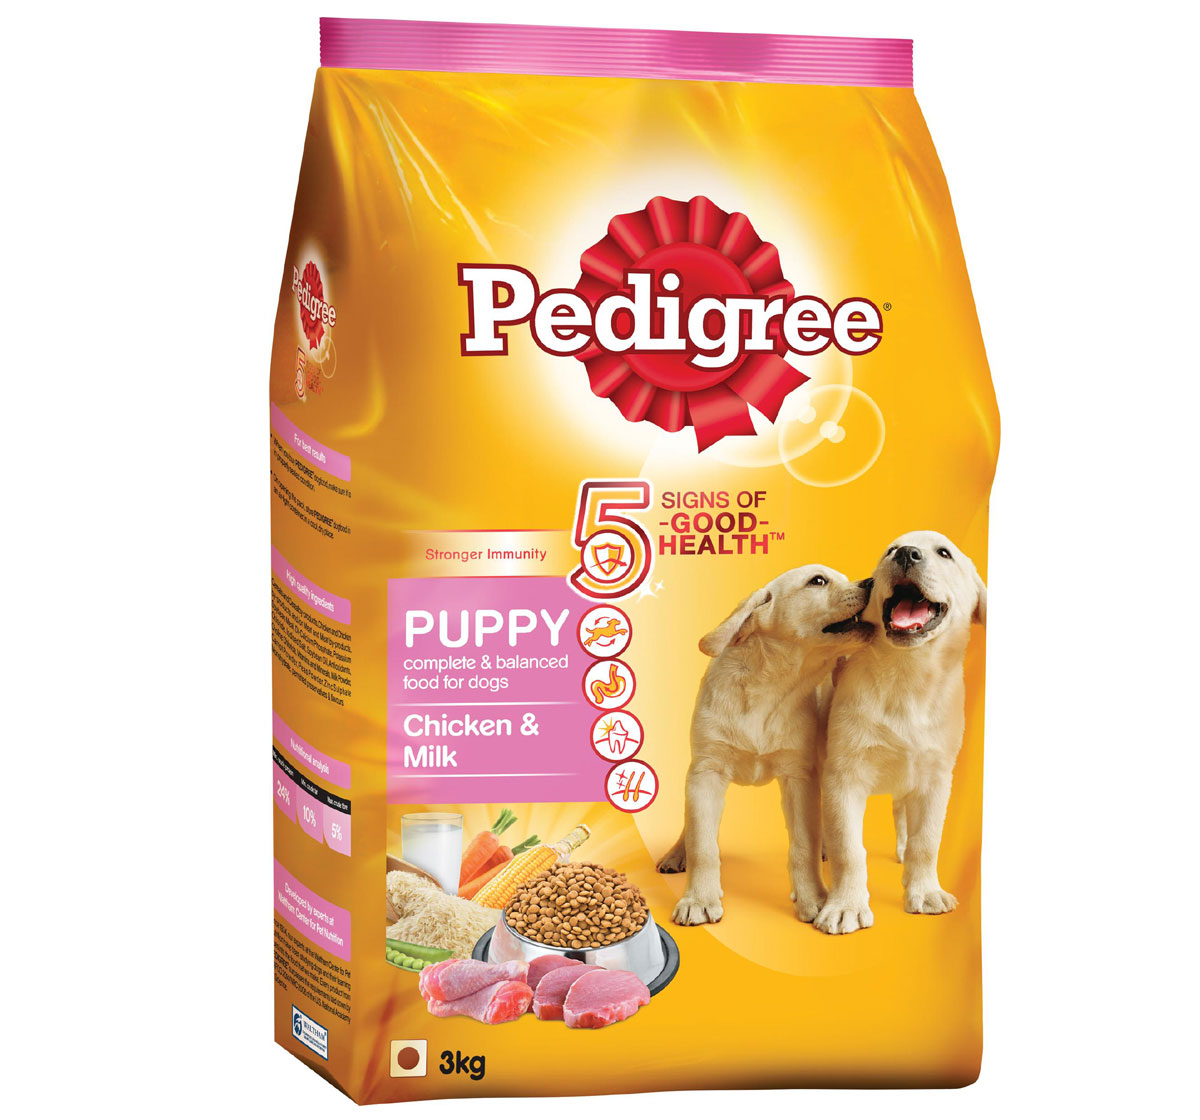 Is Pedigree Dog Food Good For Puppies